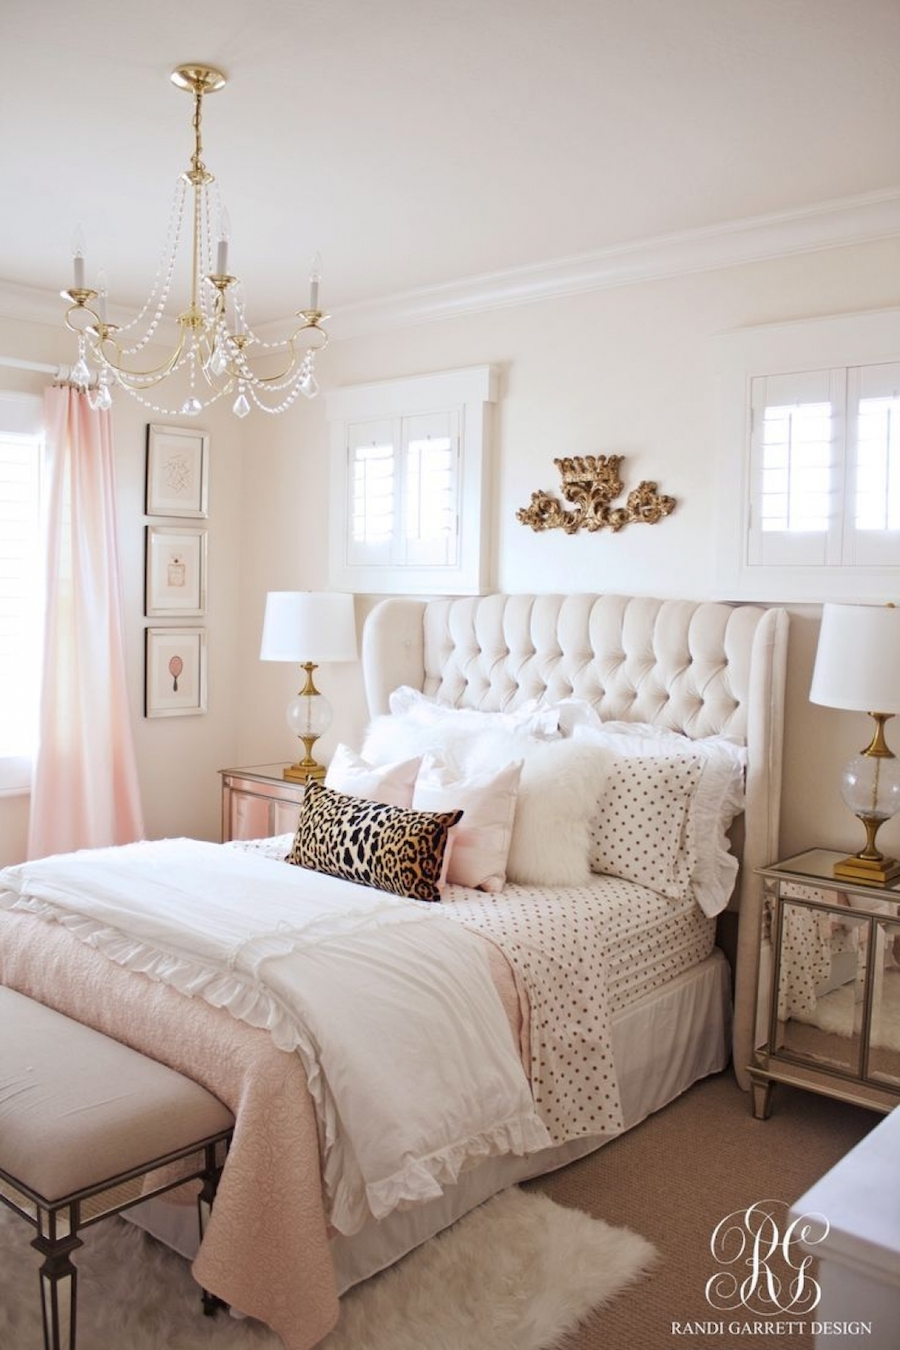 Feminine bedroom with white tufted headboard by Randi Garrett